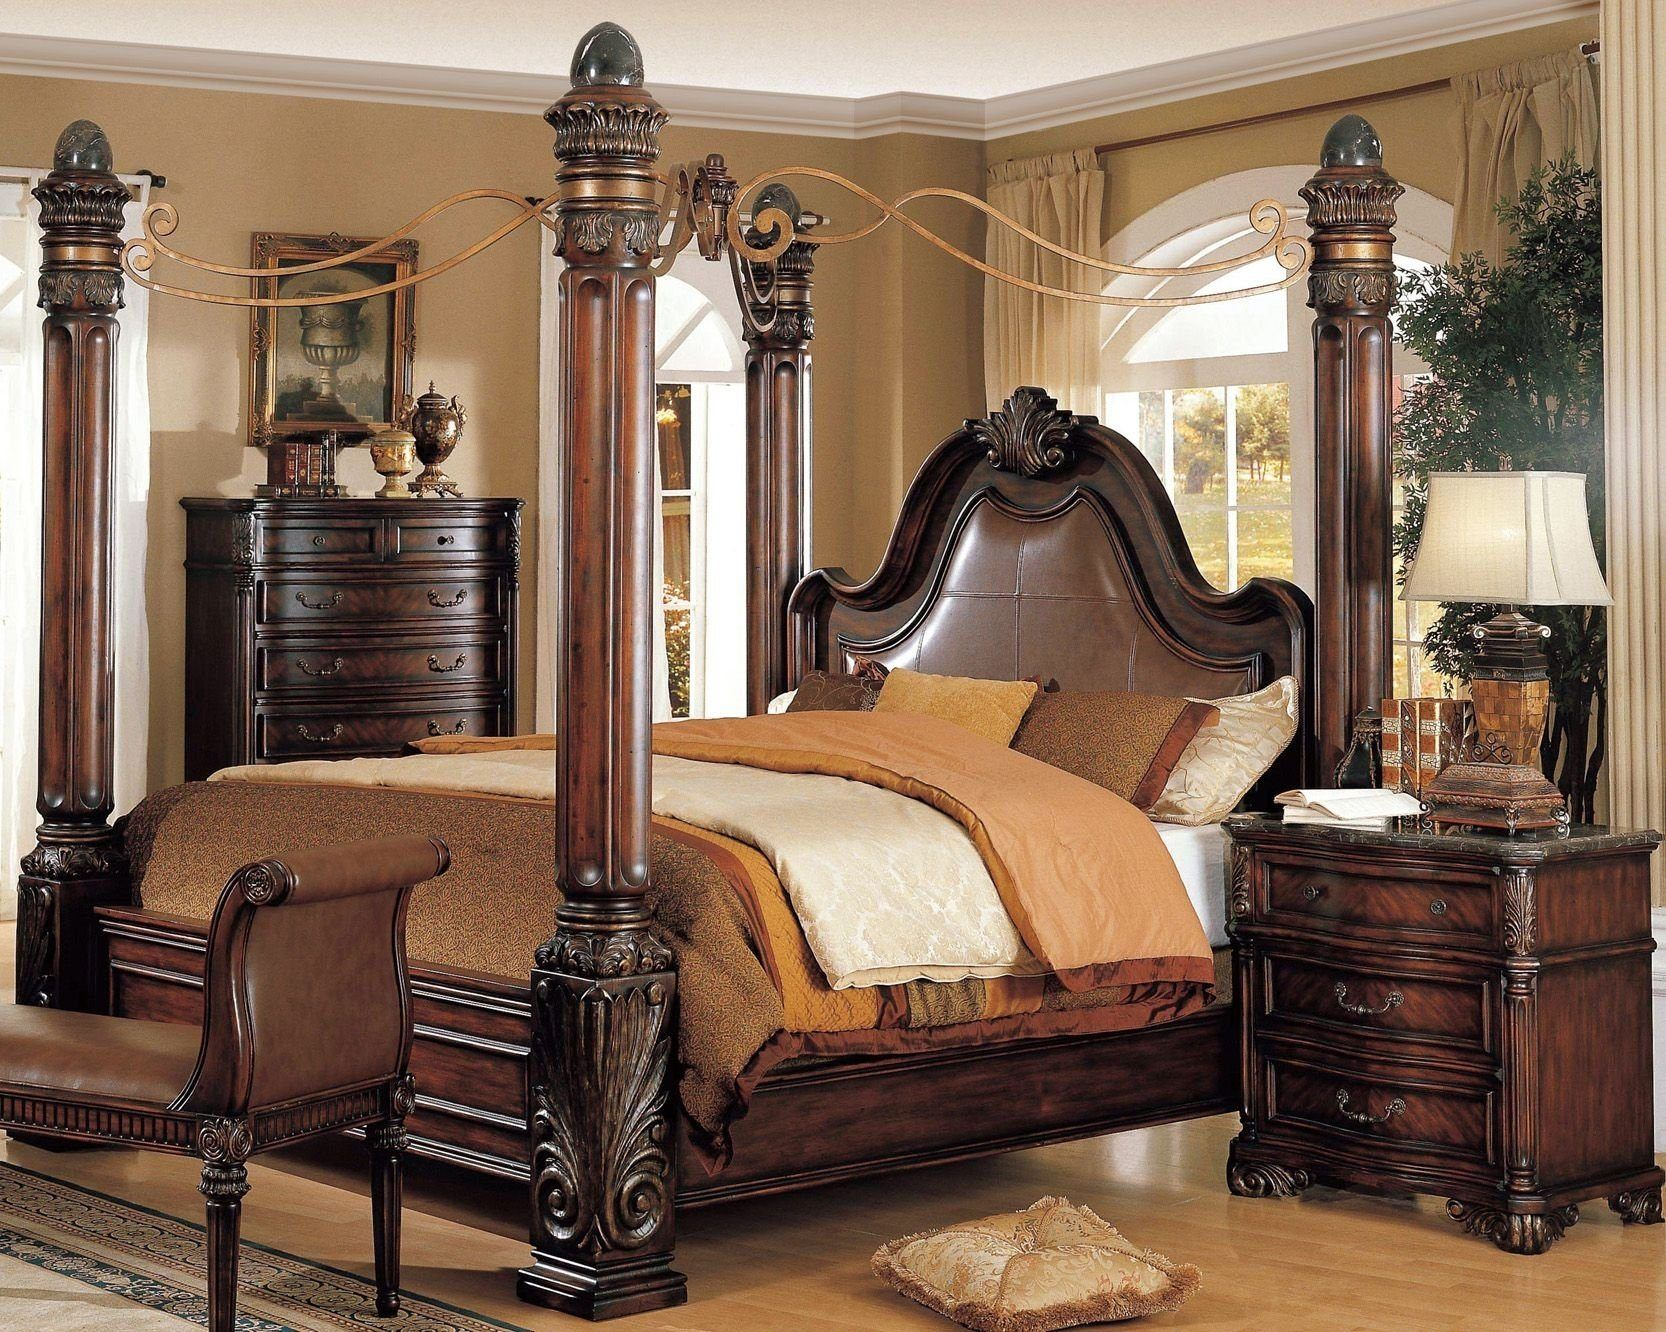 wonderful thomasville bedroom furniture bed frame with poles and